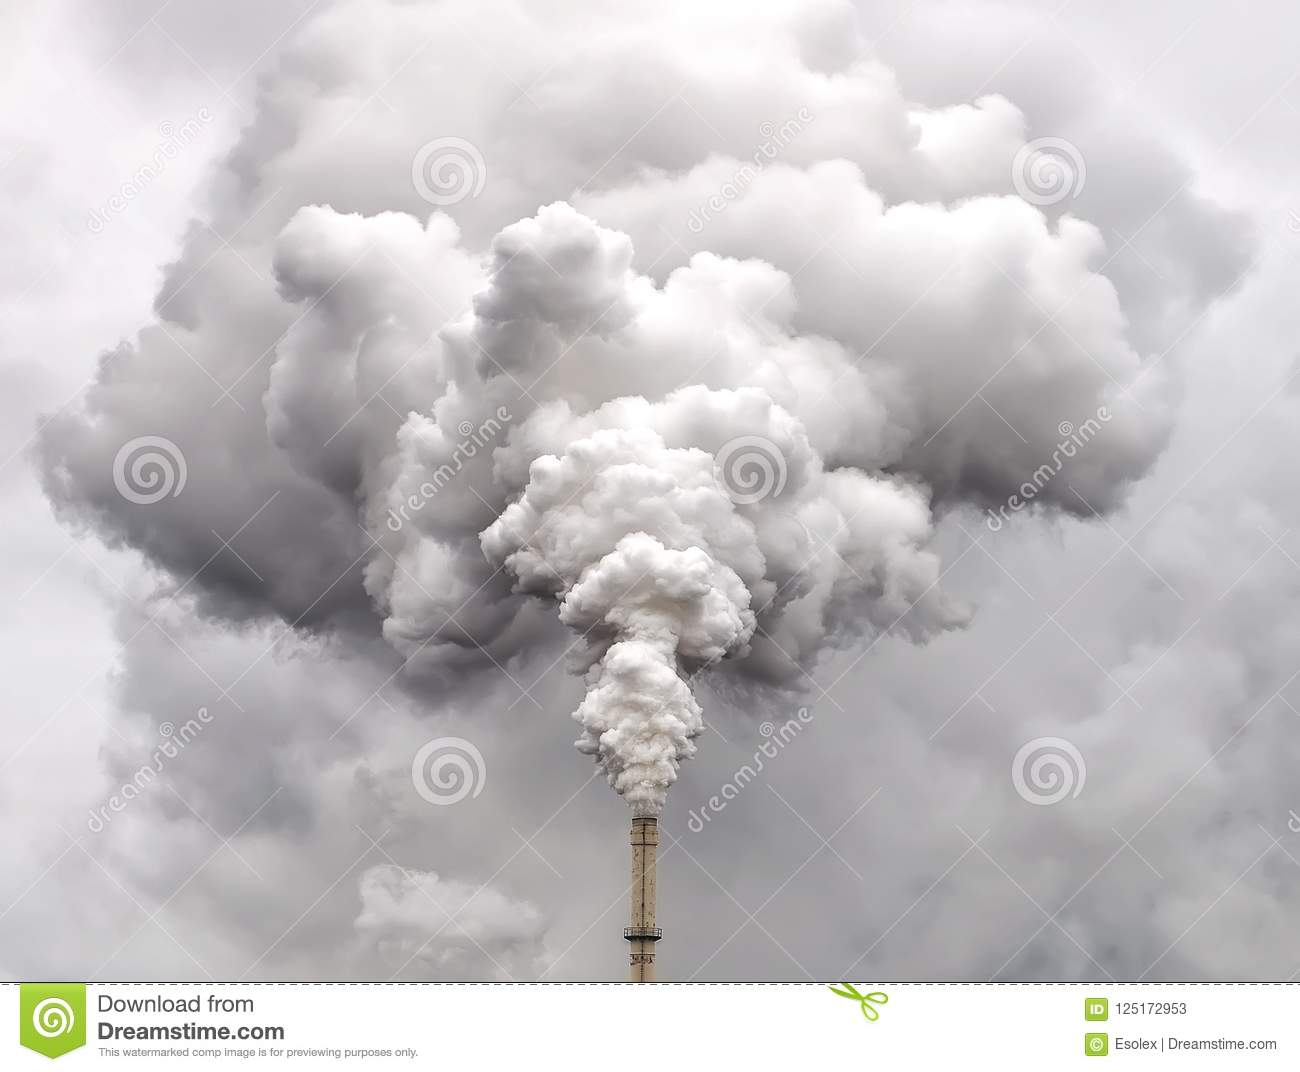 Smoke from factory pipe against overcast sky